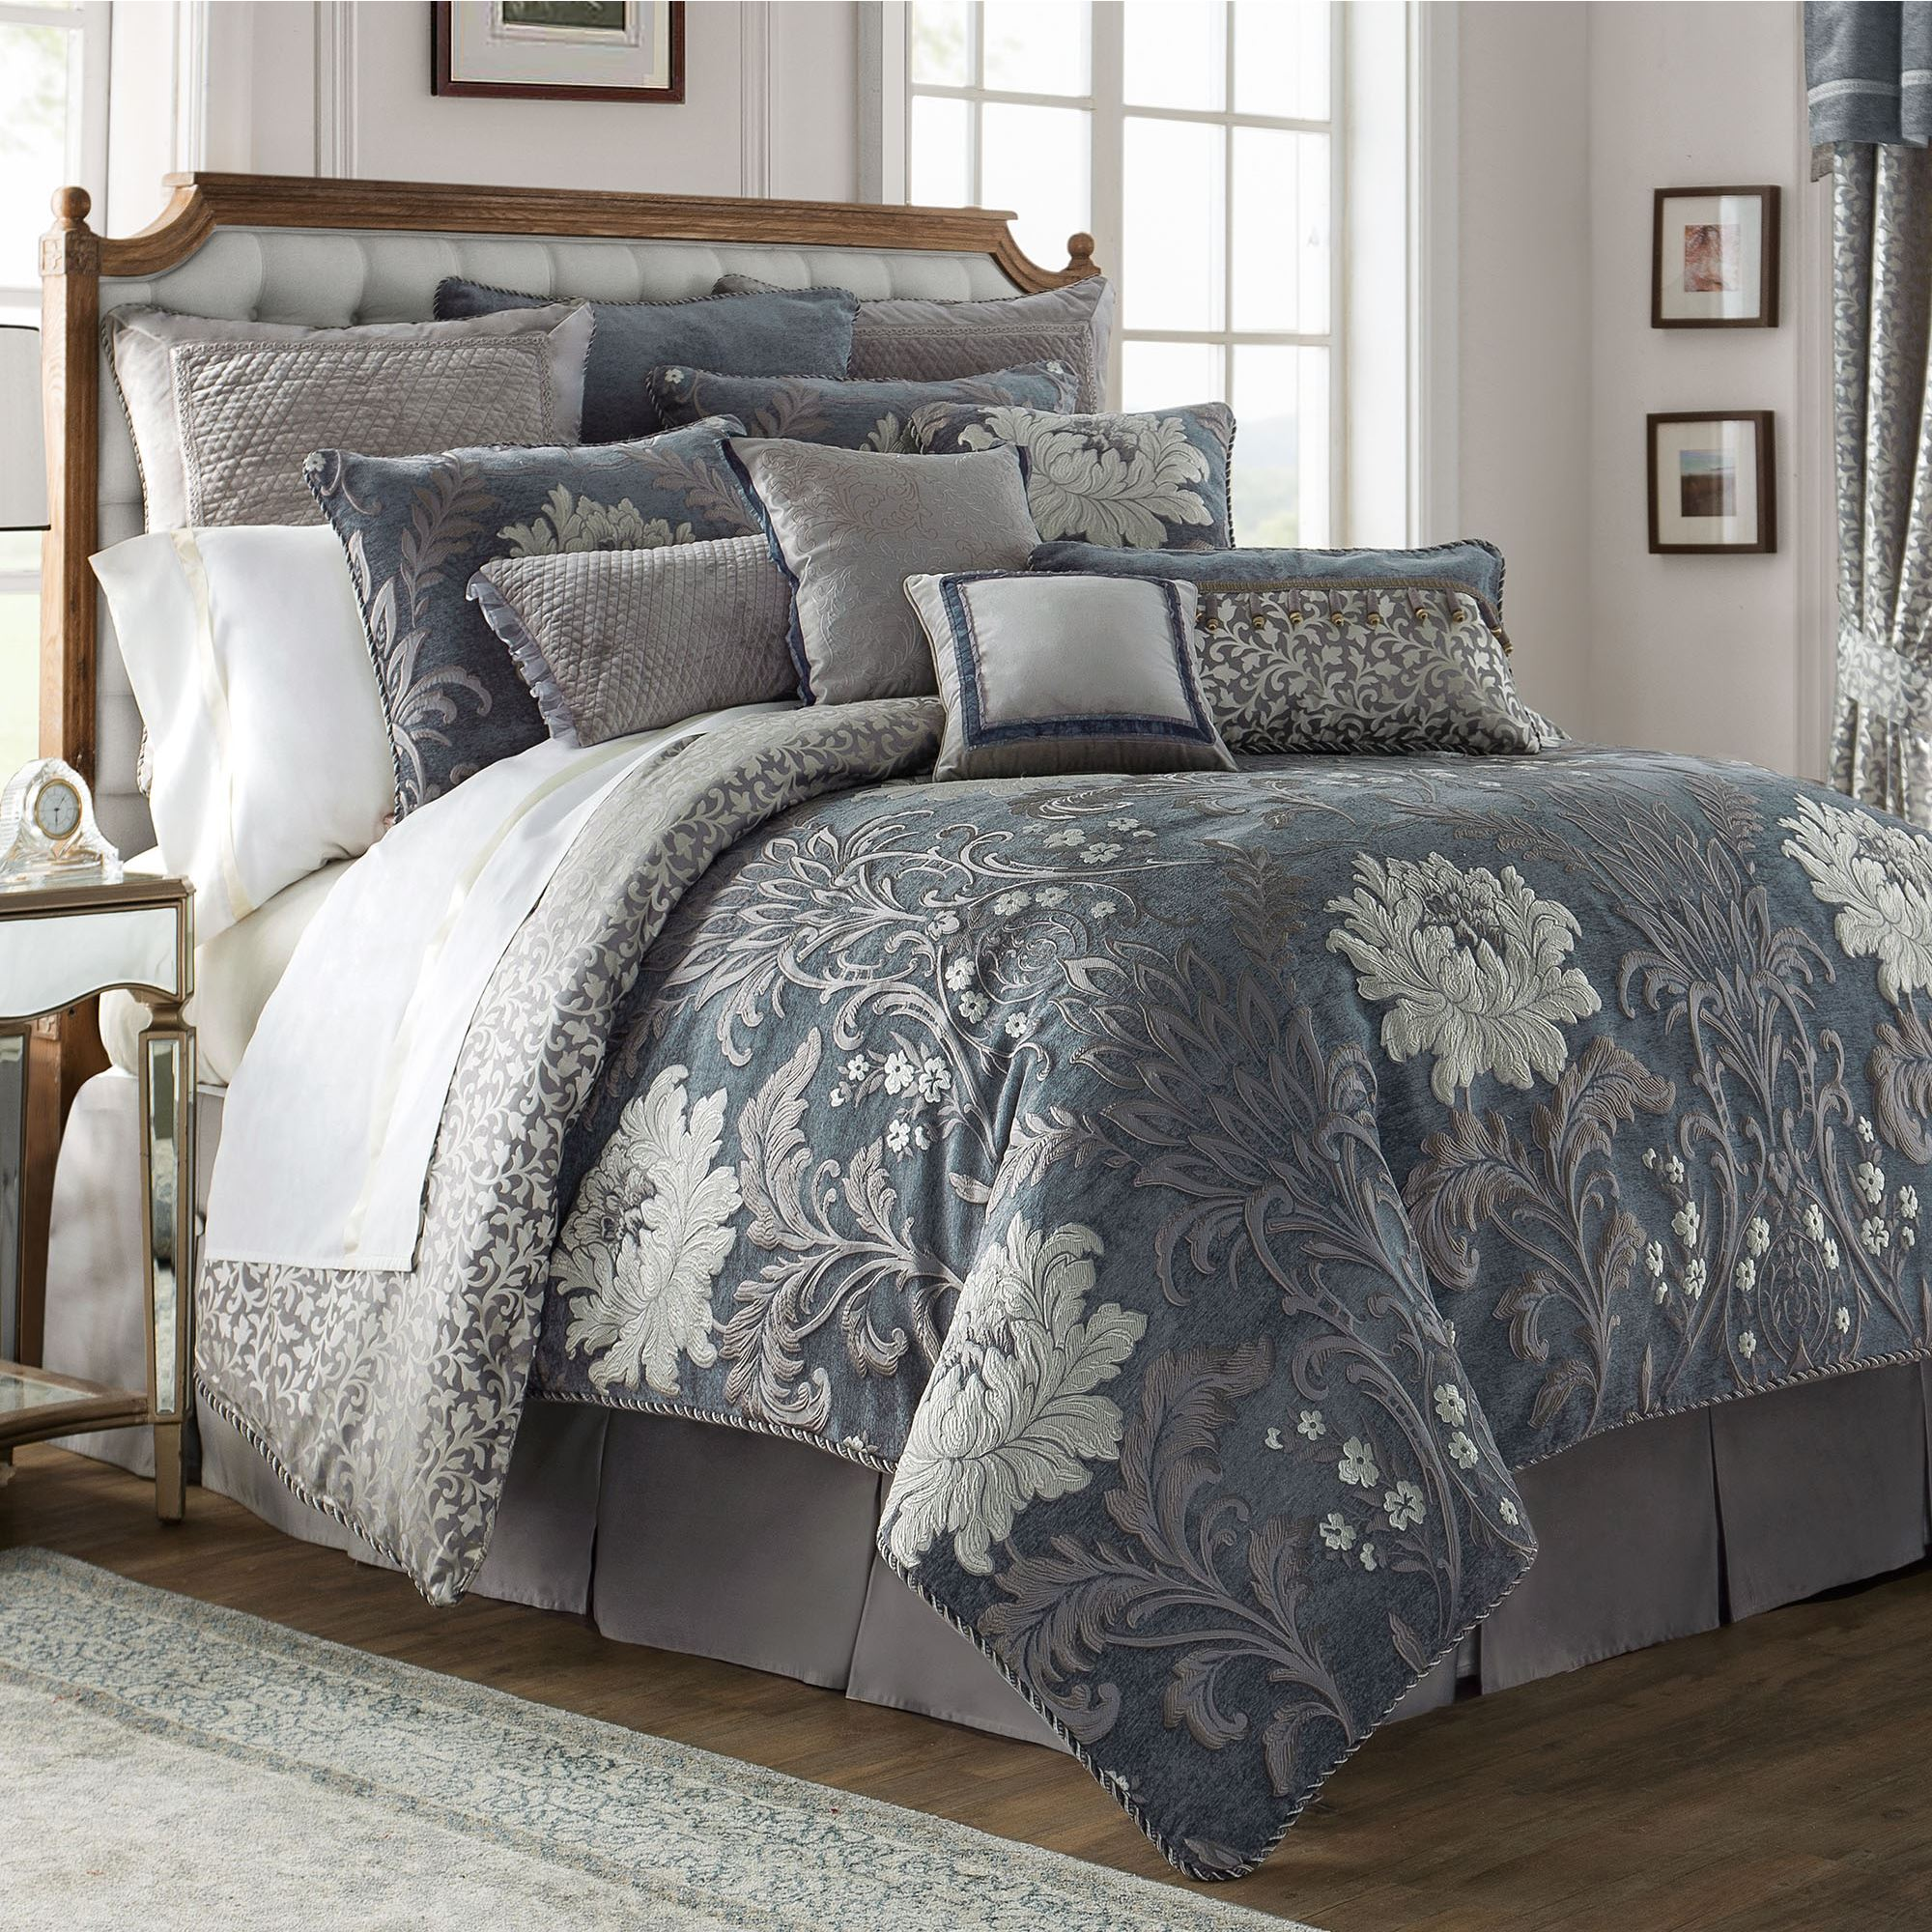 hei wid set home essential prod blue bedding stripe bed comforter gray complete and p qlt